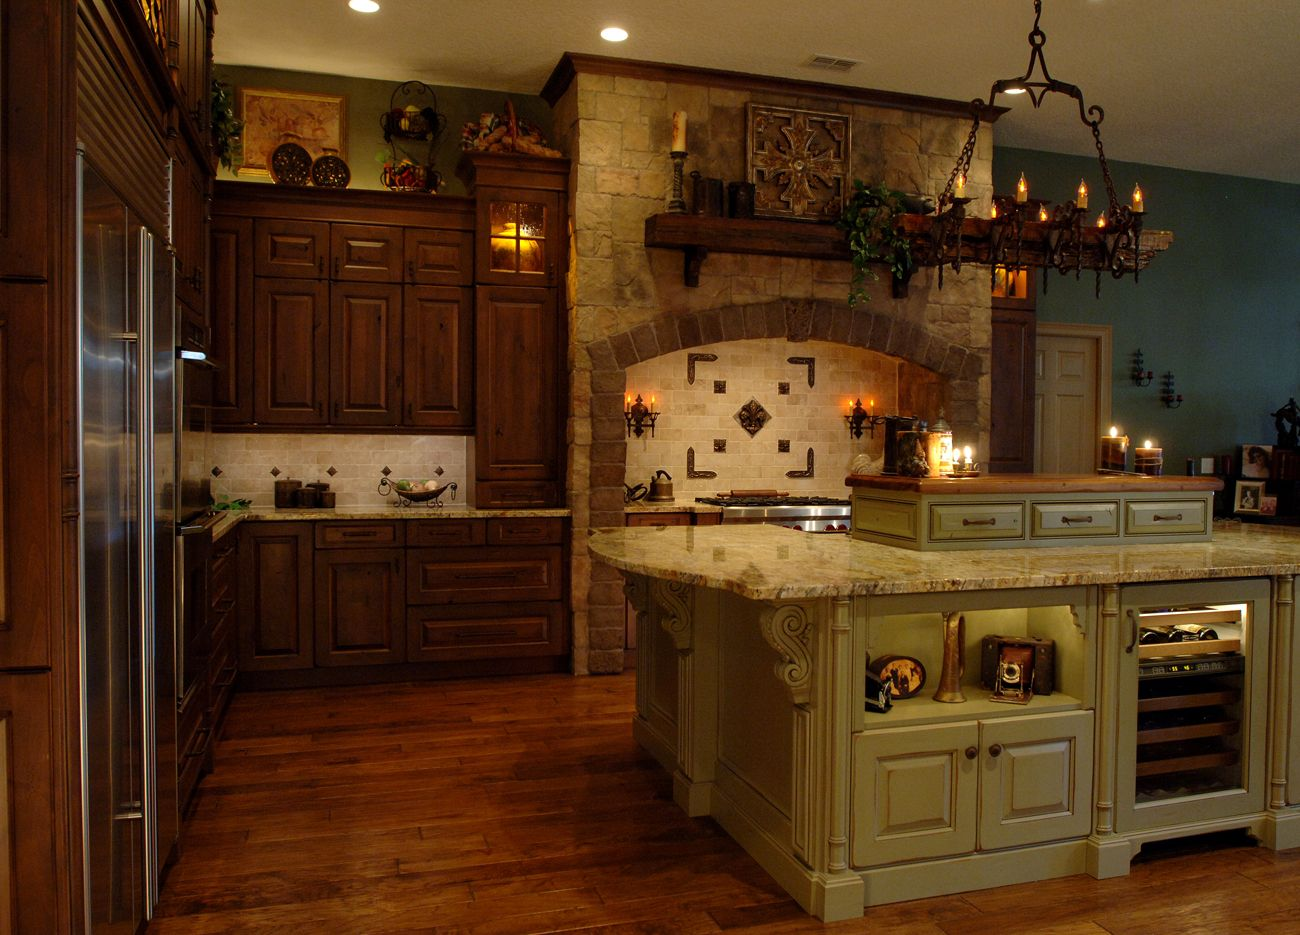 This Old World Kitchens Looks Like It S Straight Out Of A An Old English Medieval Castle Old World Kitchens Old English Decor Kitchen Inspirations